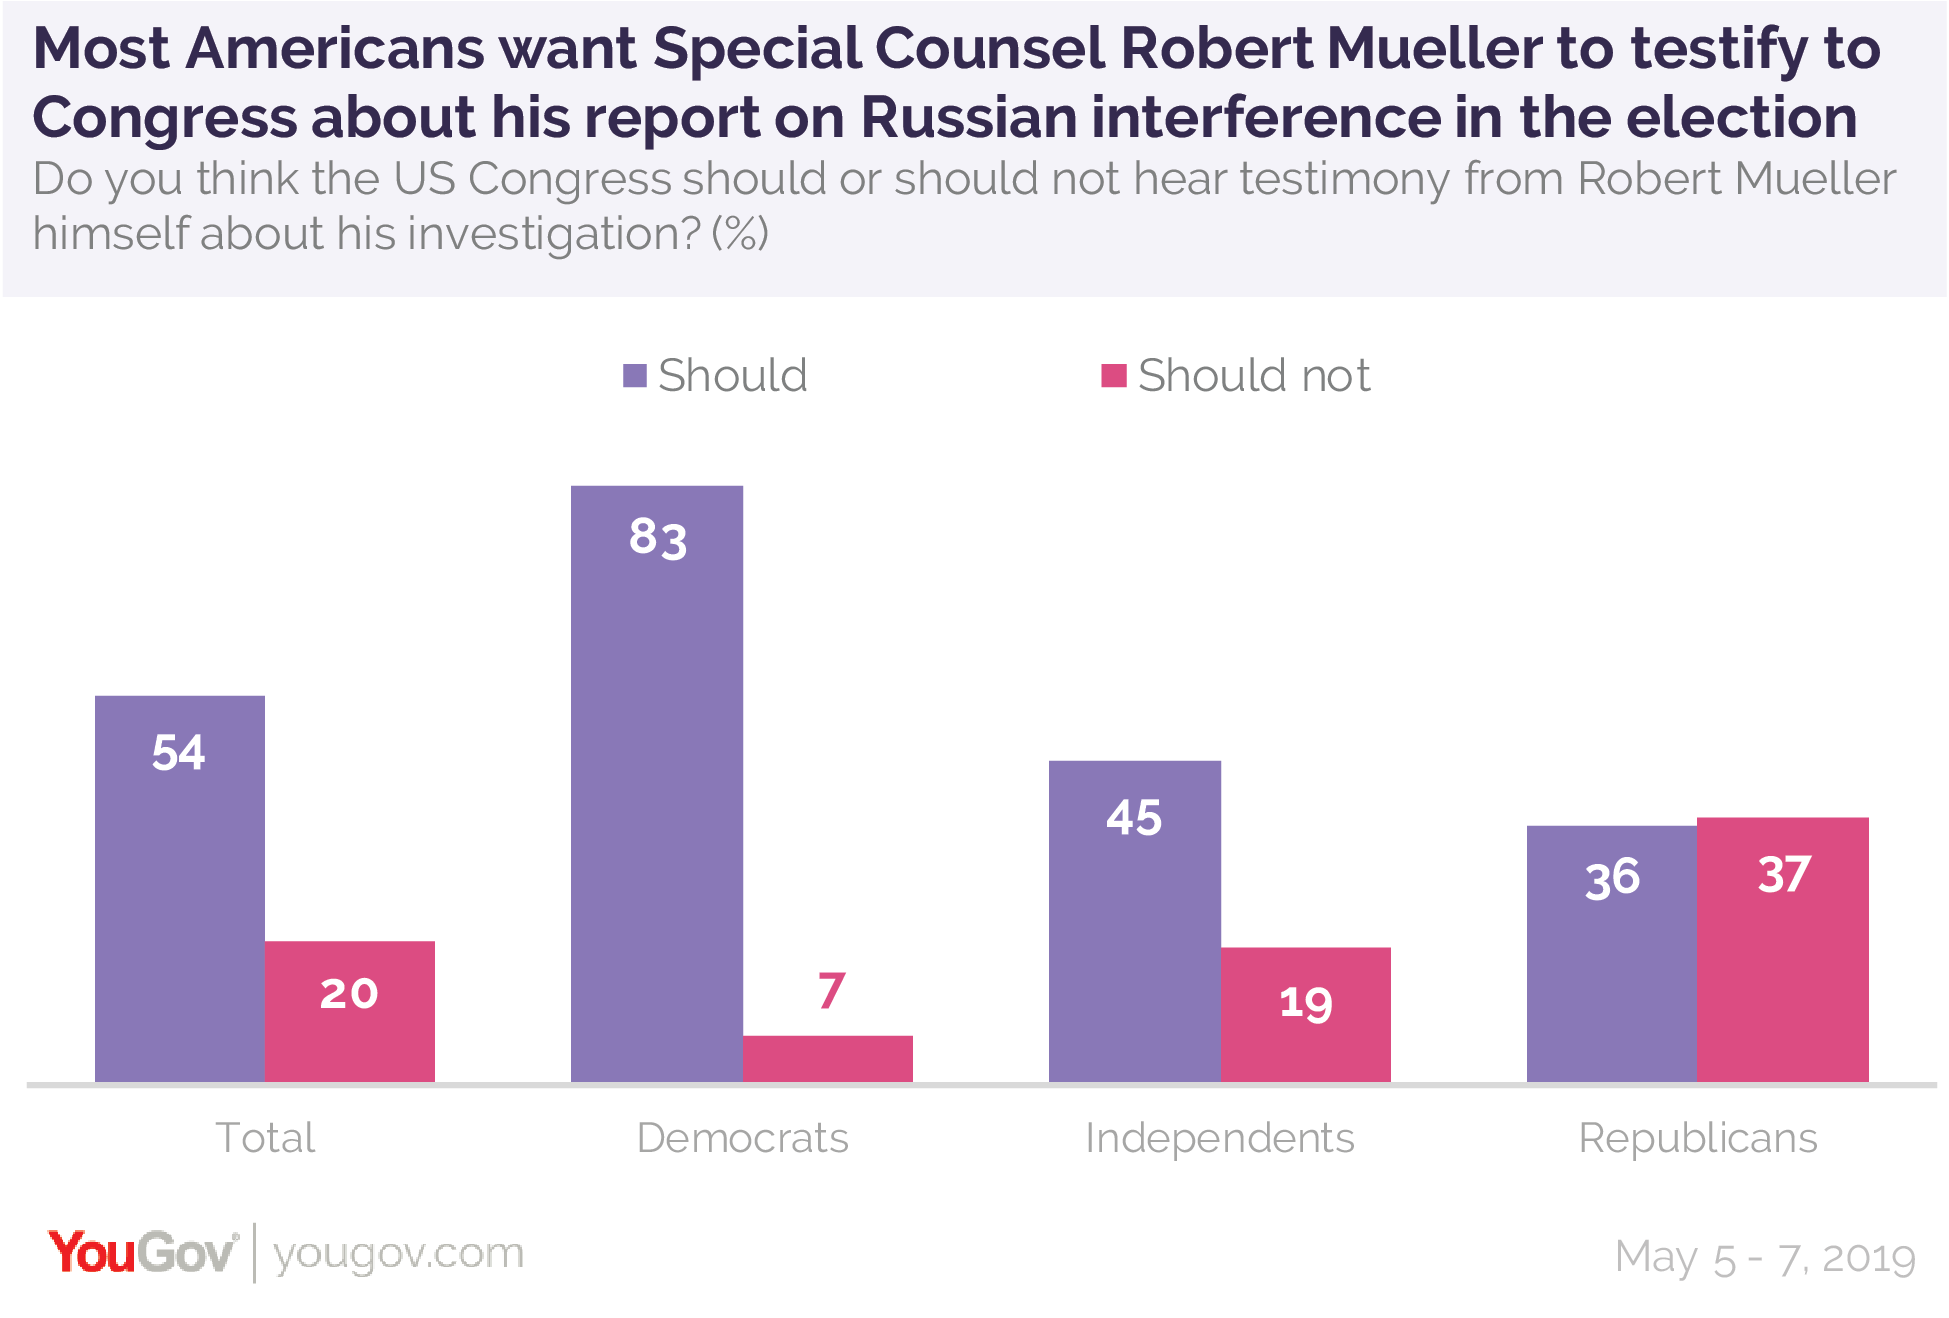 Most Americans want Special Counsel Robert Mueller to testify to Congress about his report on Russian interference in the 2016 presidential election